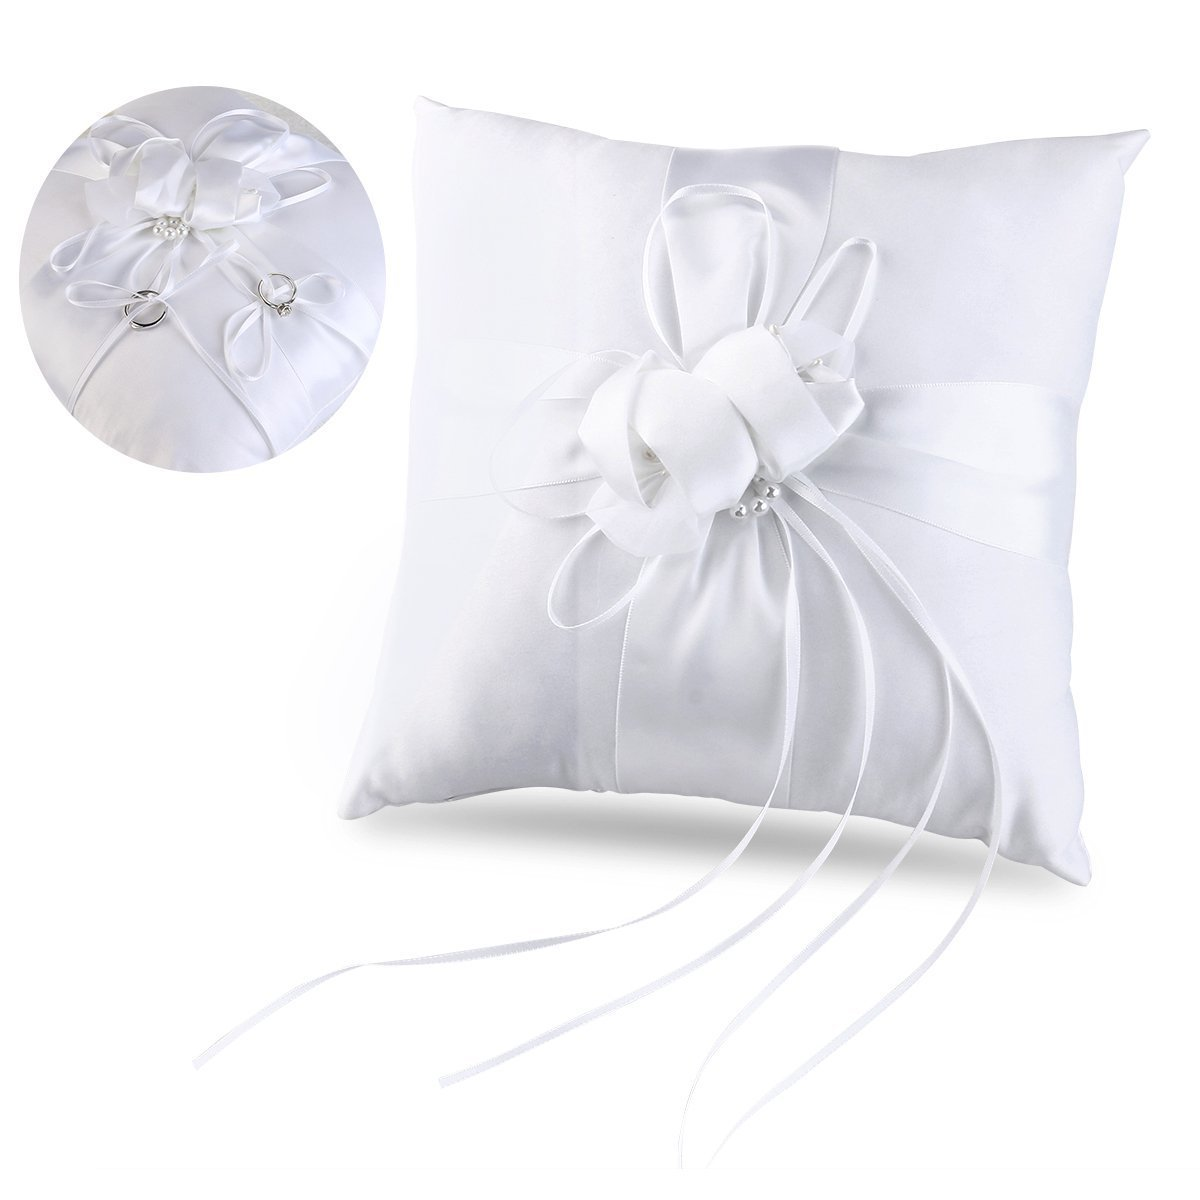 silk custom pure detail kirkby made with product crafts rose pillow ring img wedding